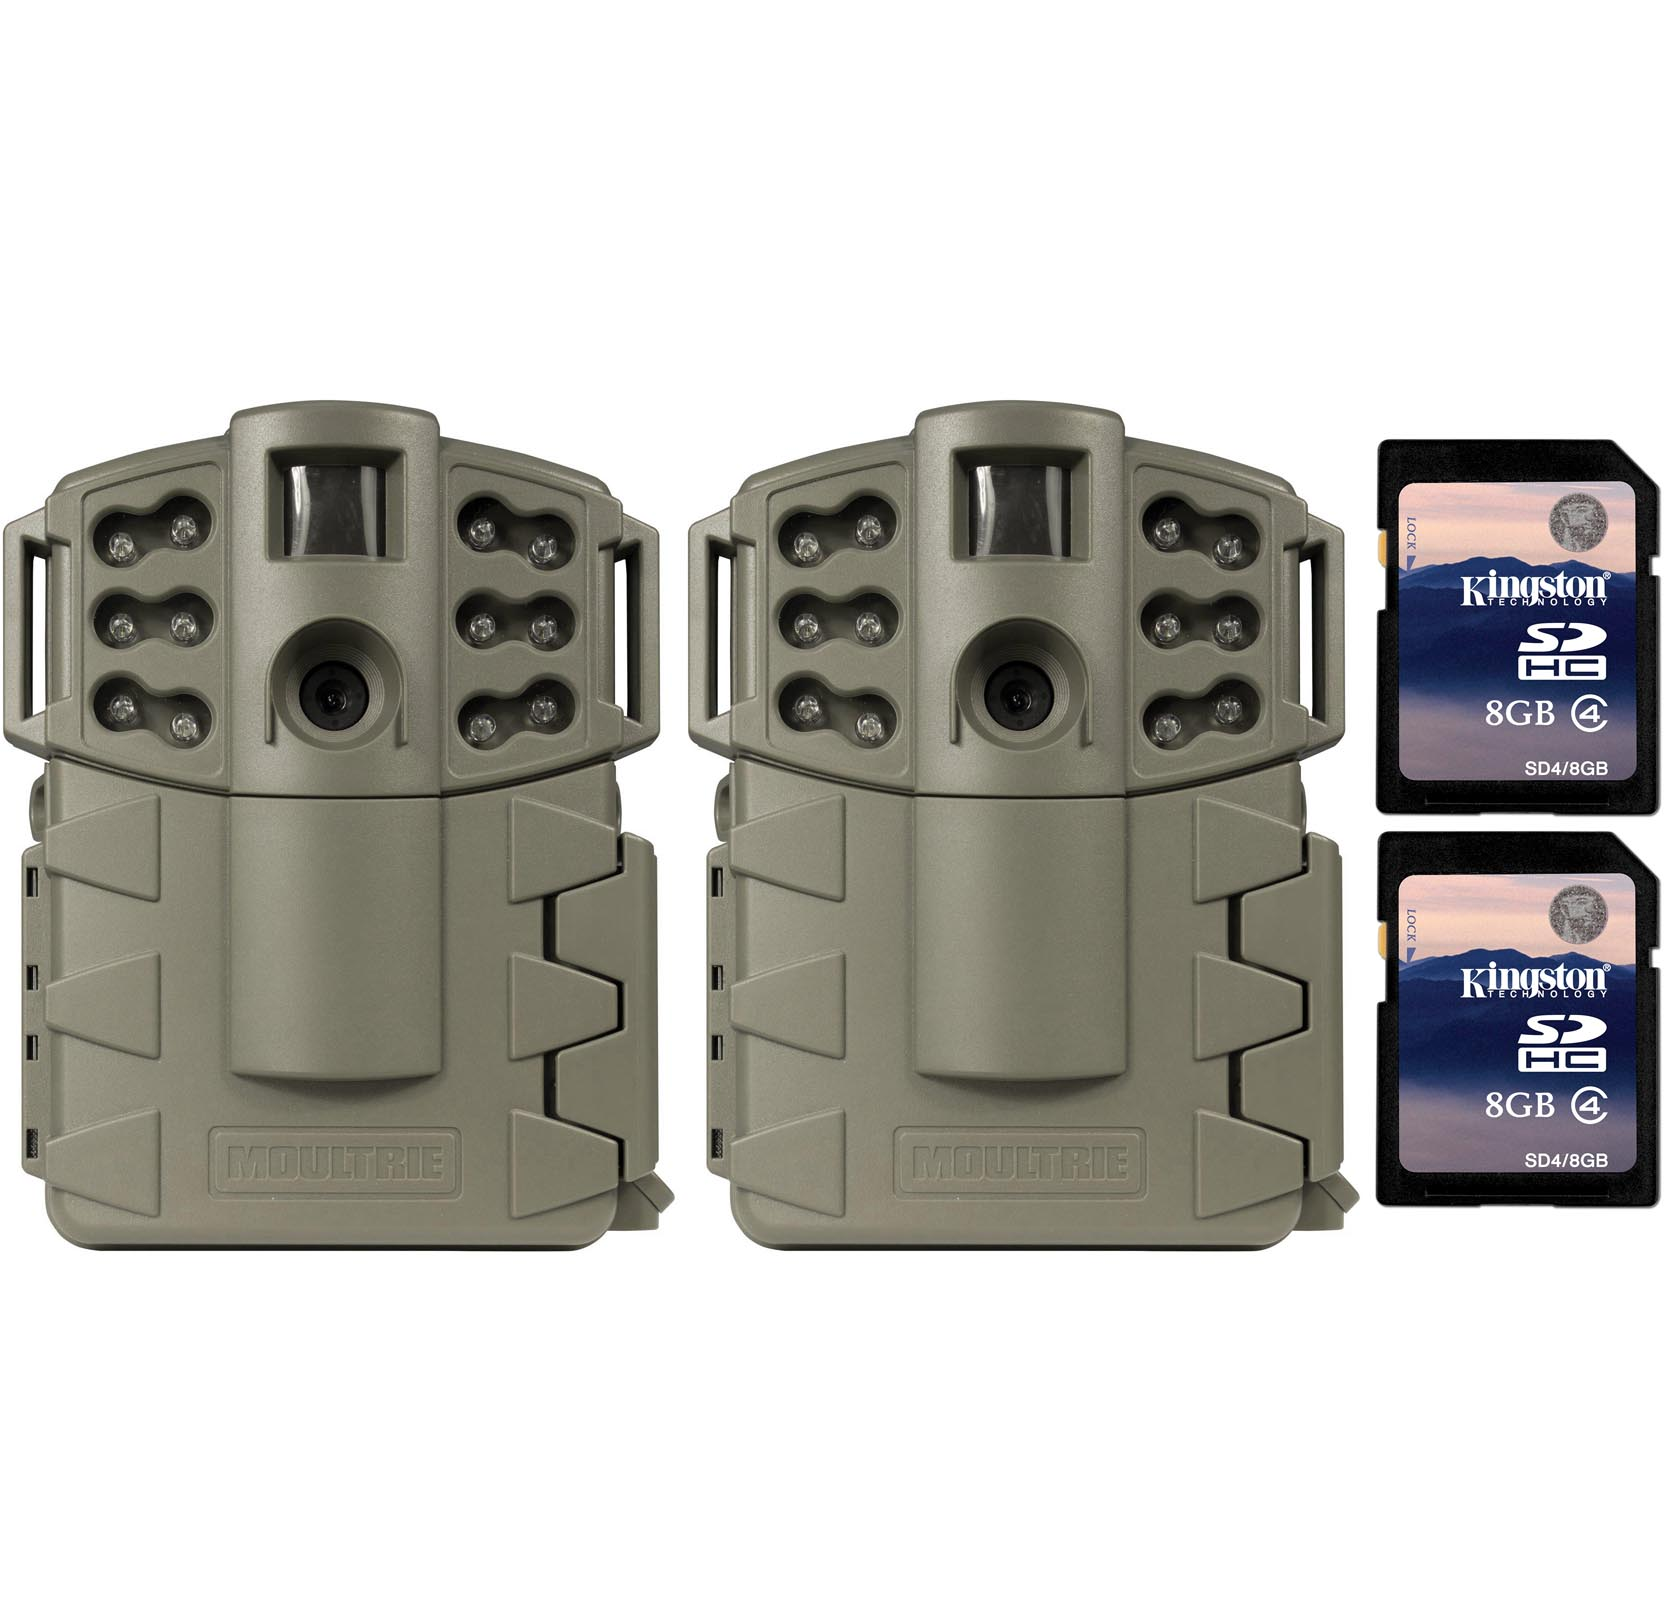 Moultrie Game Spy A-5 Gen2 Low Glow IR 5 MP Game Cameras + SD Cards, 2 Pack